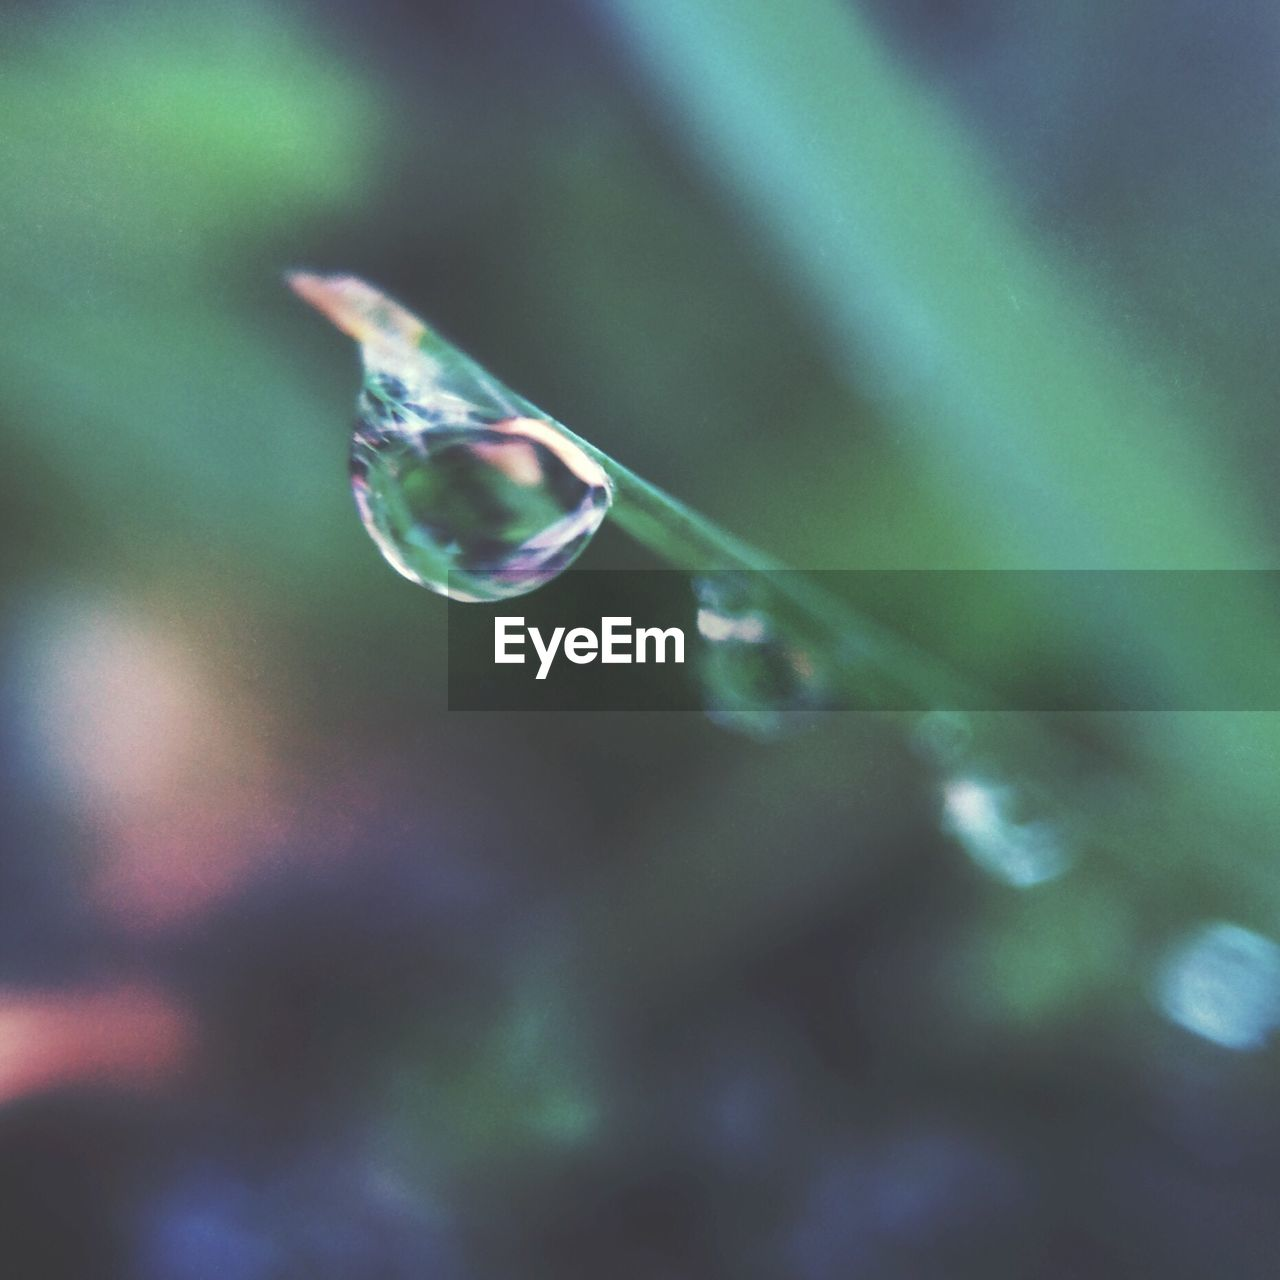 drop, bubble, fragility, water, nature, focus on foreground, beauty in nature, wet, selective focus, raindrop, no people, purity, mid-air, close-up, day, rainbow, outdoors, refraction, bubble wand, spectrum, dripping, freshness